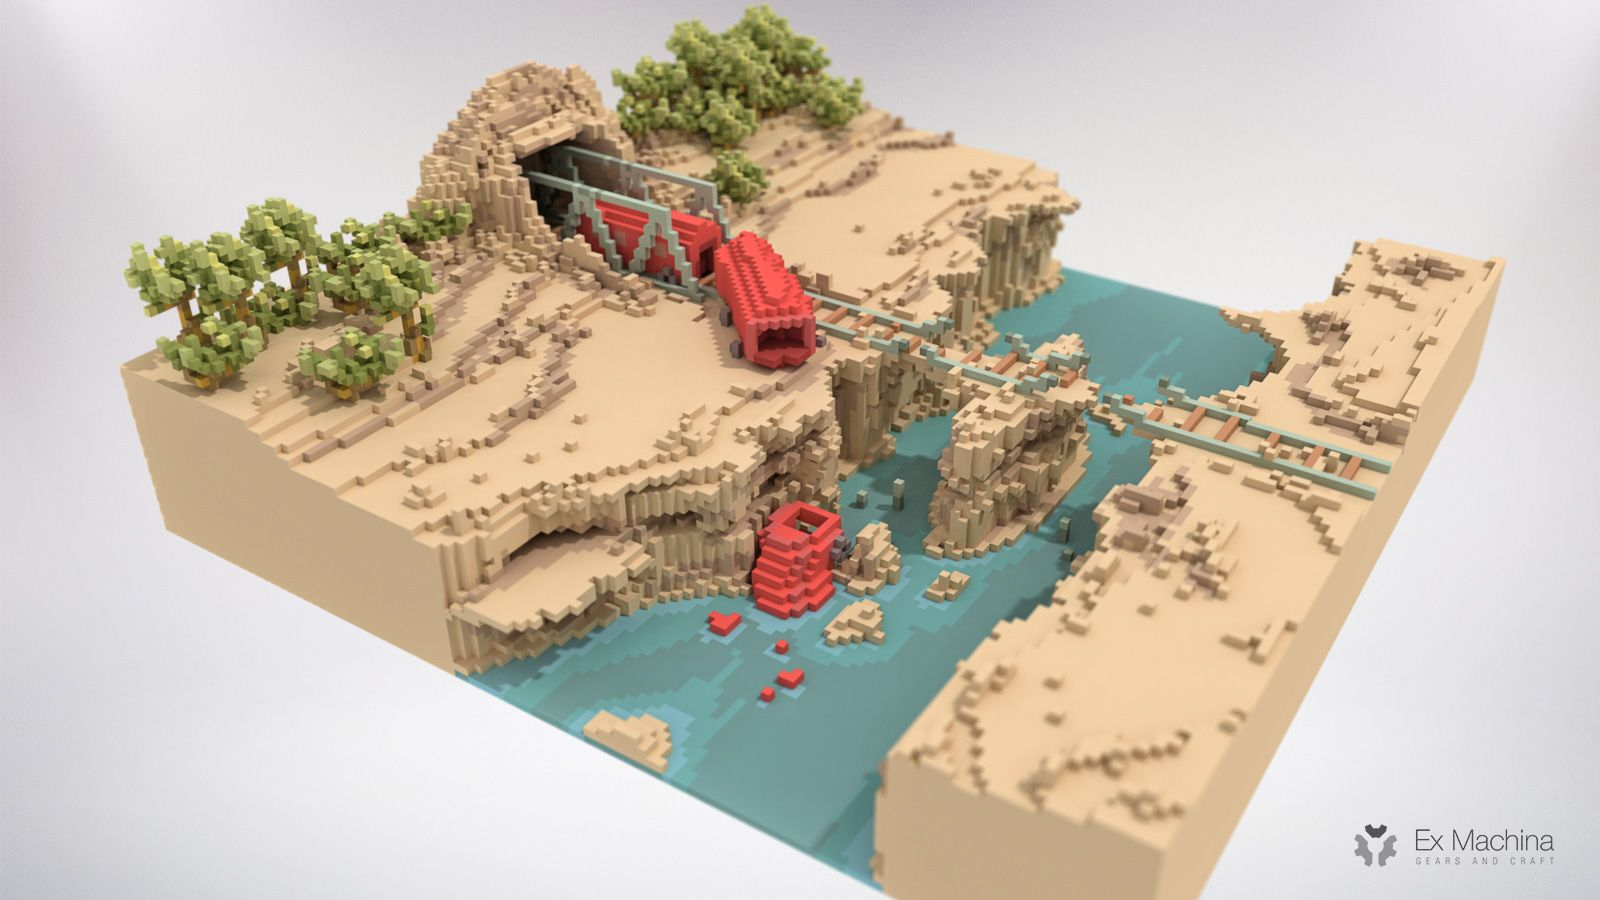 Machina Le Pixel Voxel Art T - Year of Clean Water